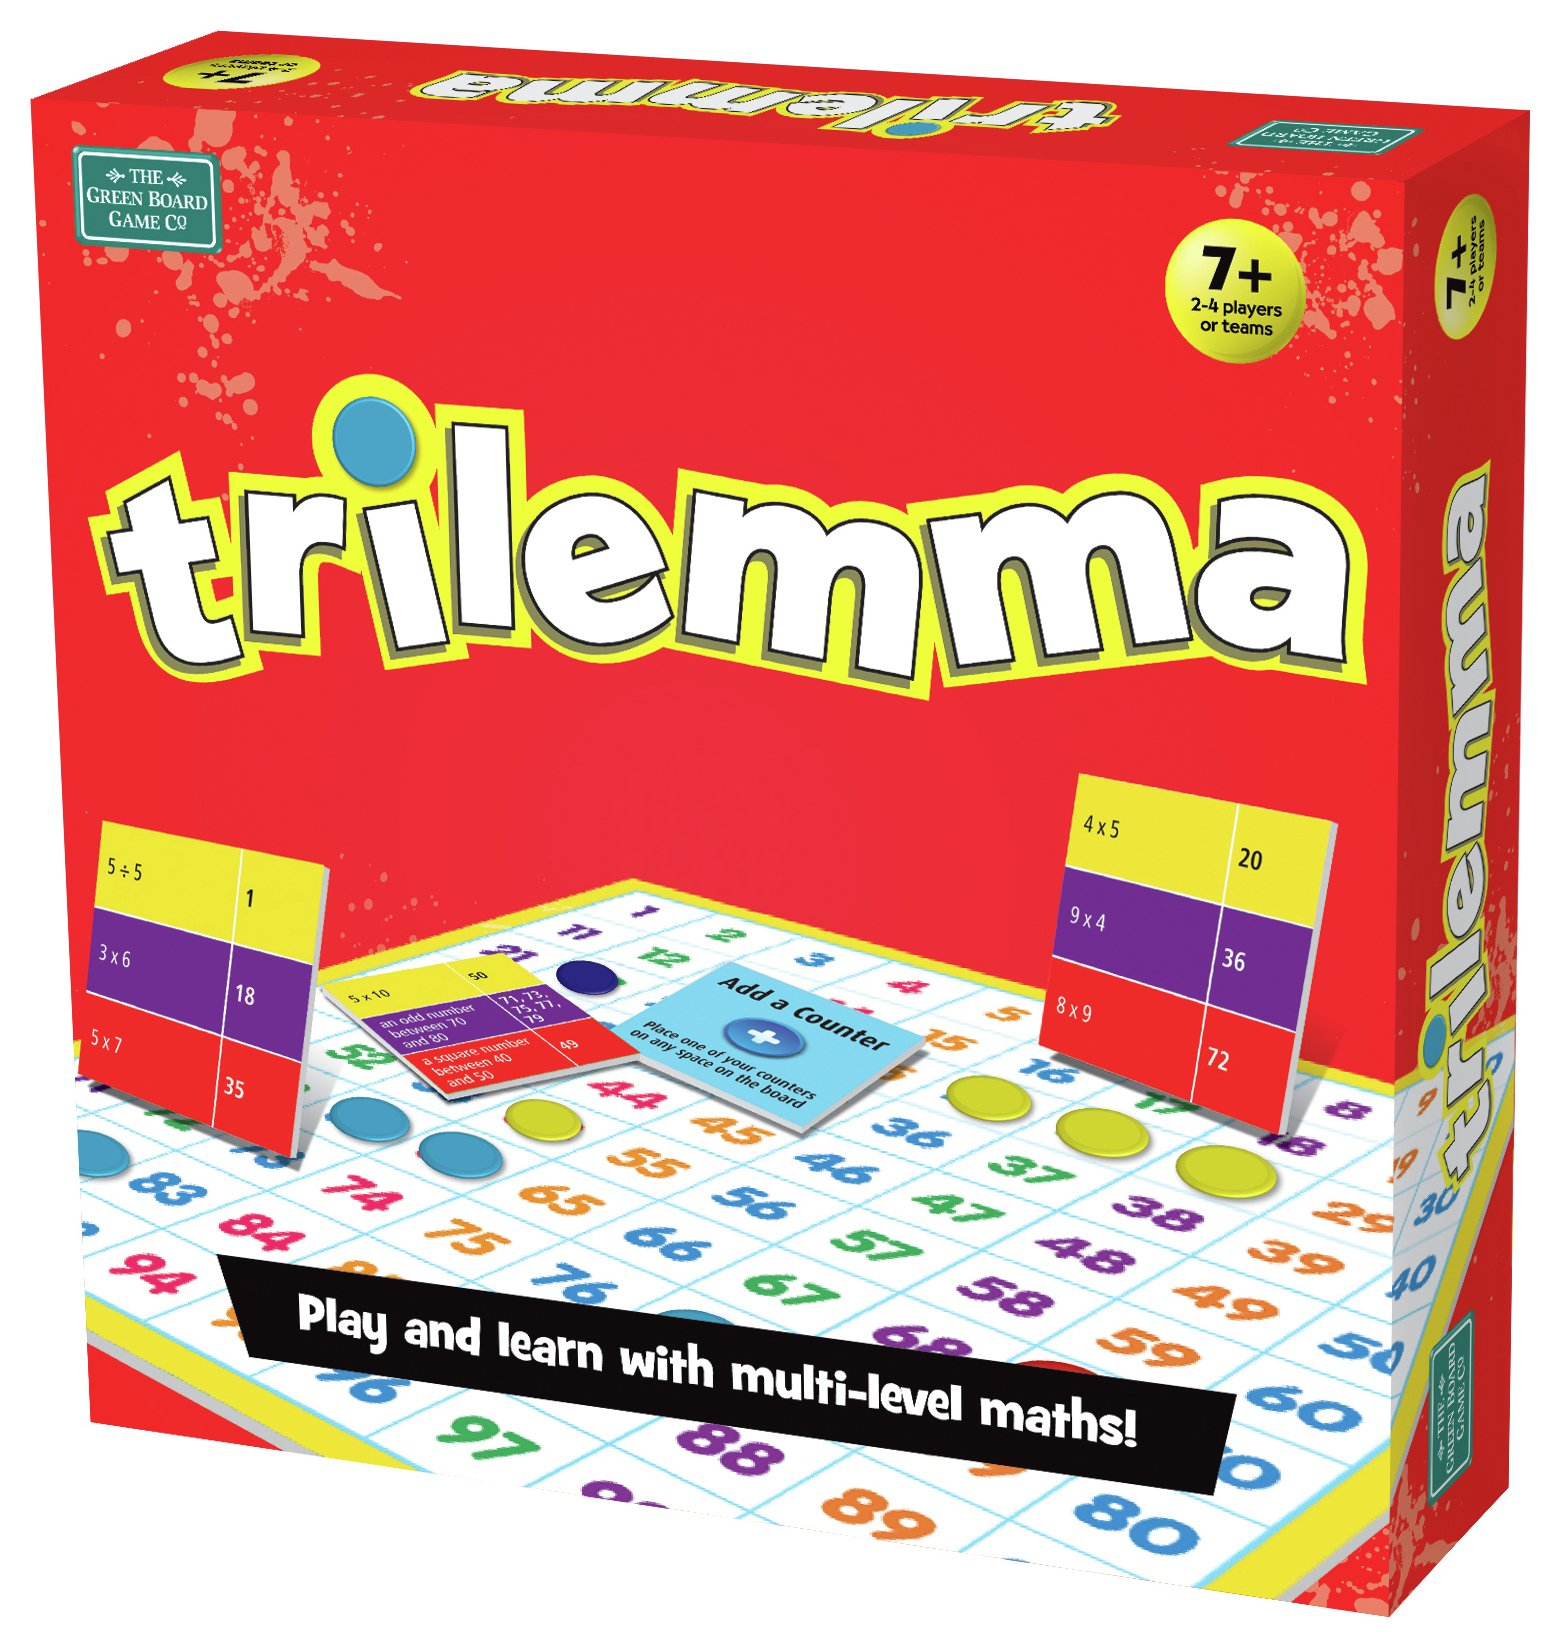 Image of Green Board Games Trilemma Maths Game